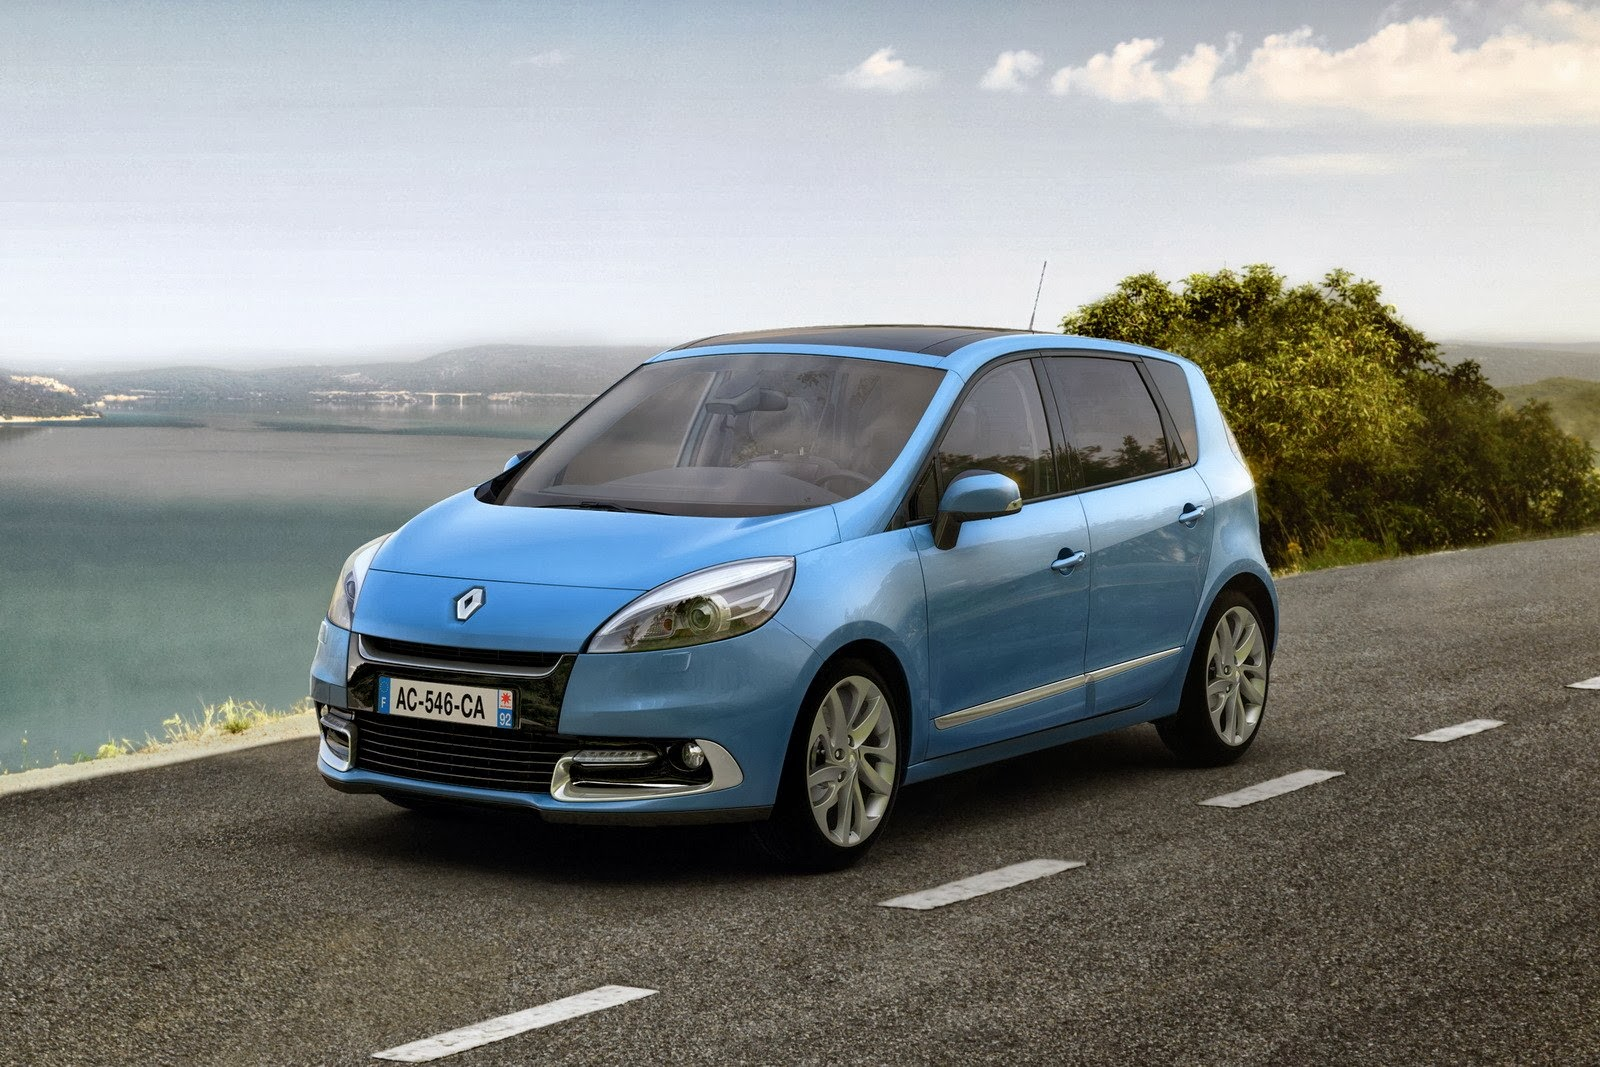 renault scenic car wallpaper best prices globe in the world. Black Bedroom Furniture Sets. Home Design Ideas